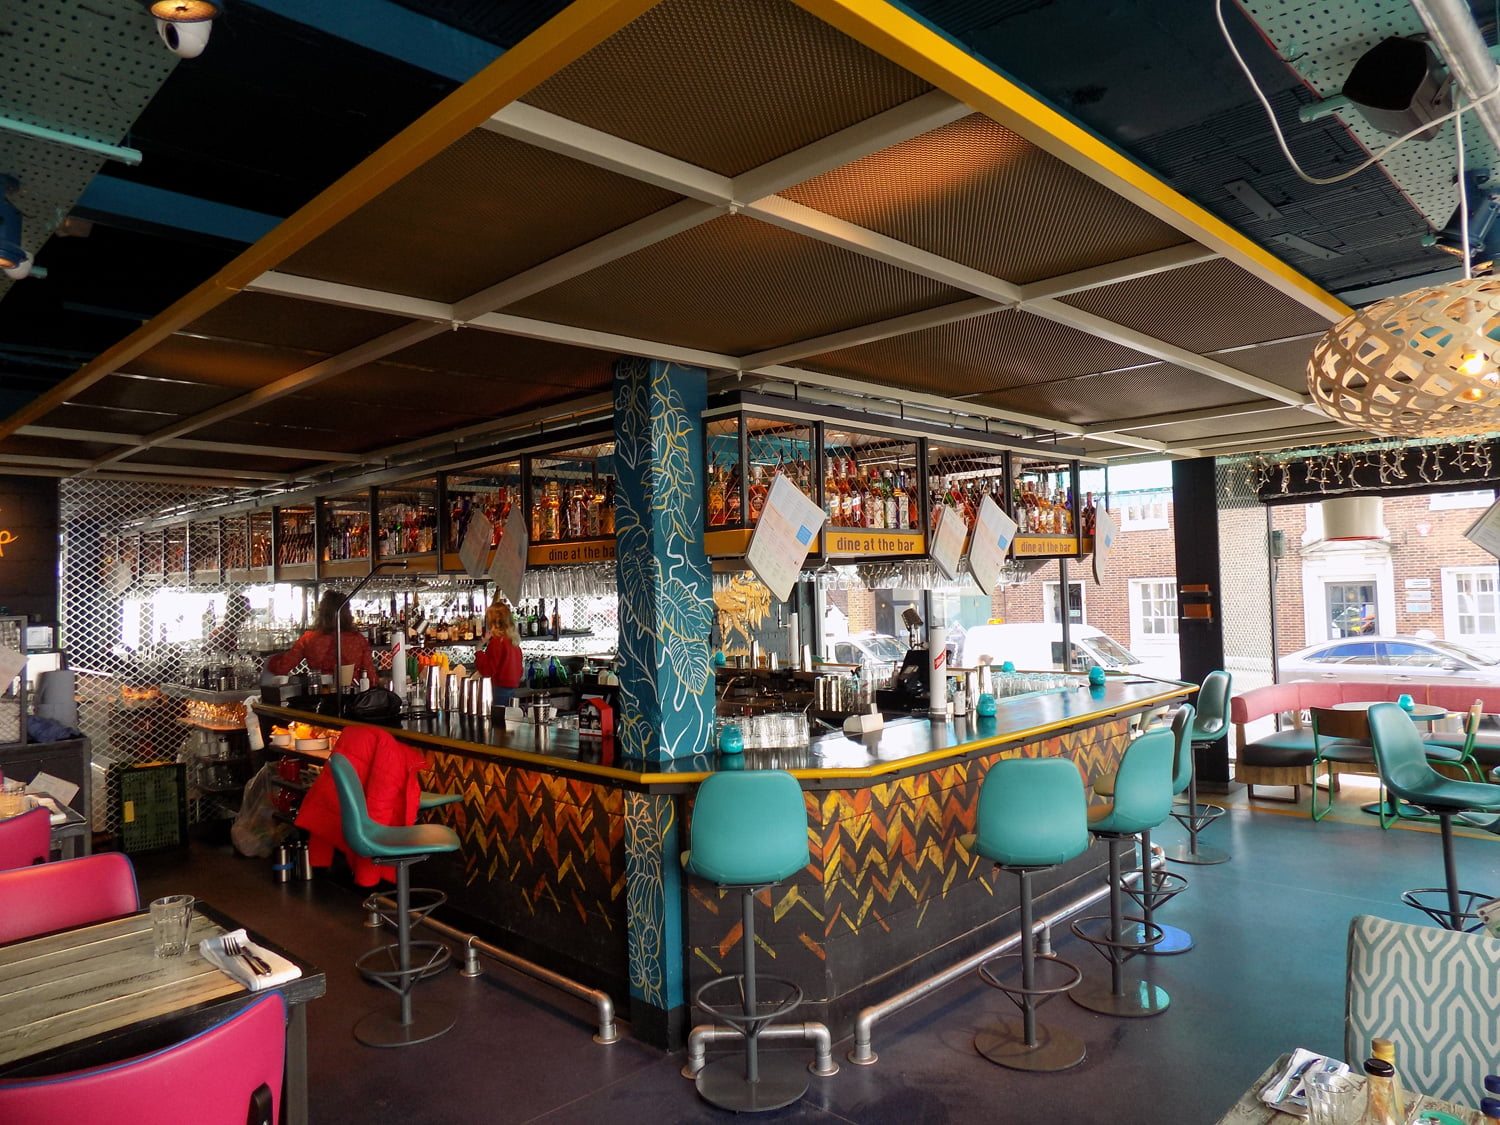 Turtle Bay Restaurant ceiling infill